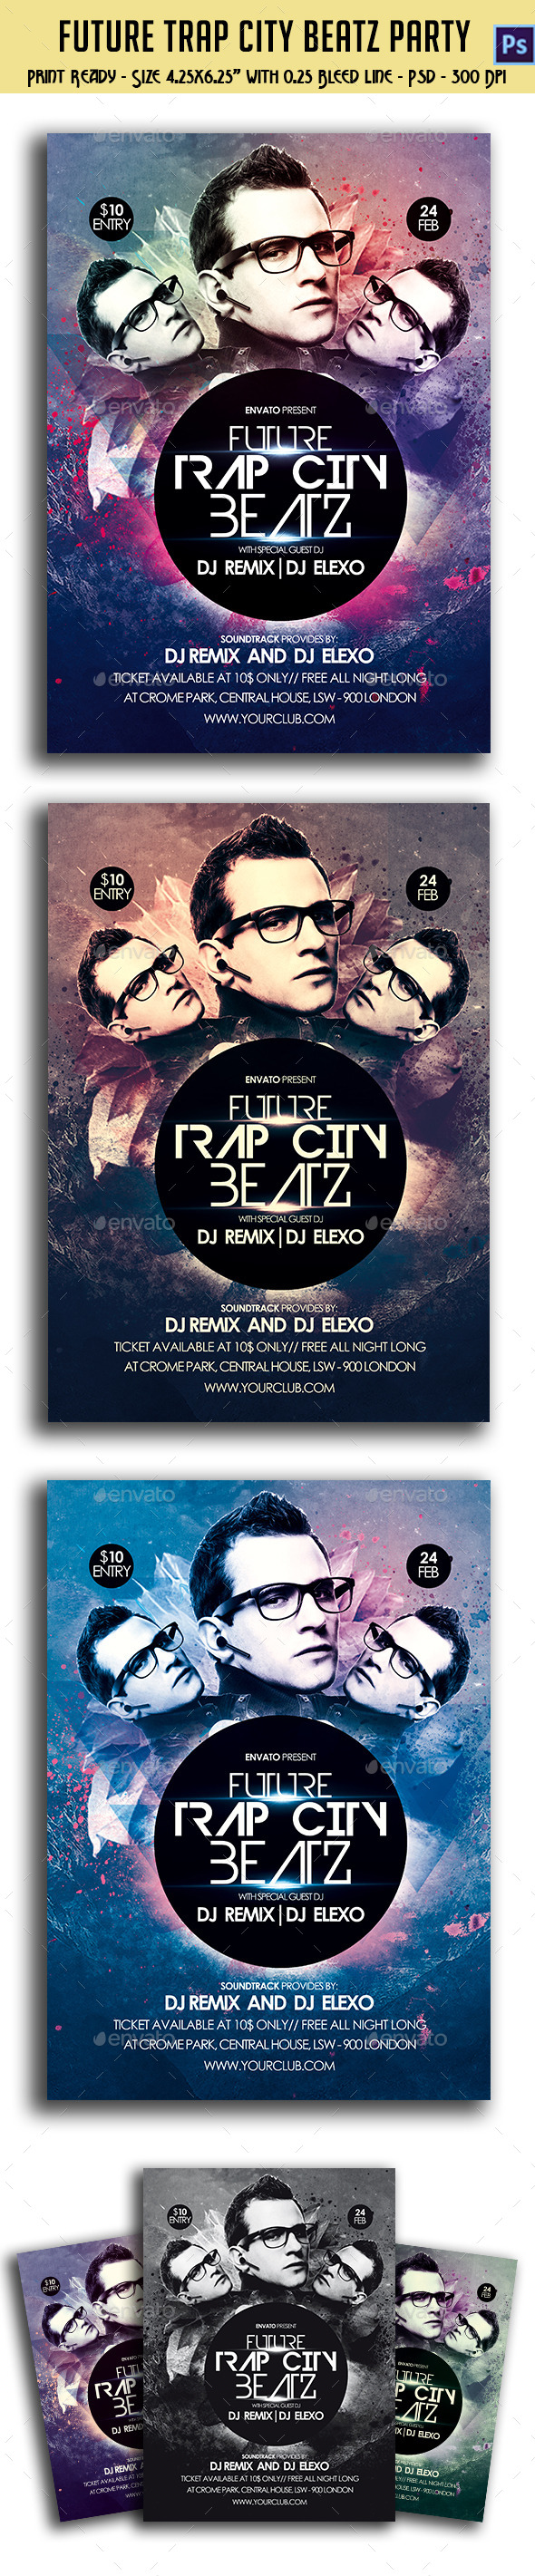 GraphicRiver Future Trap City Beatz Party Flyer 10439051